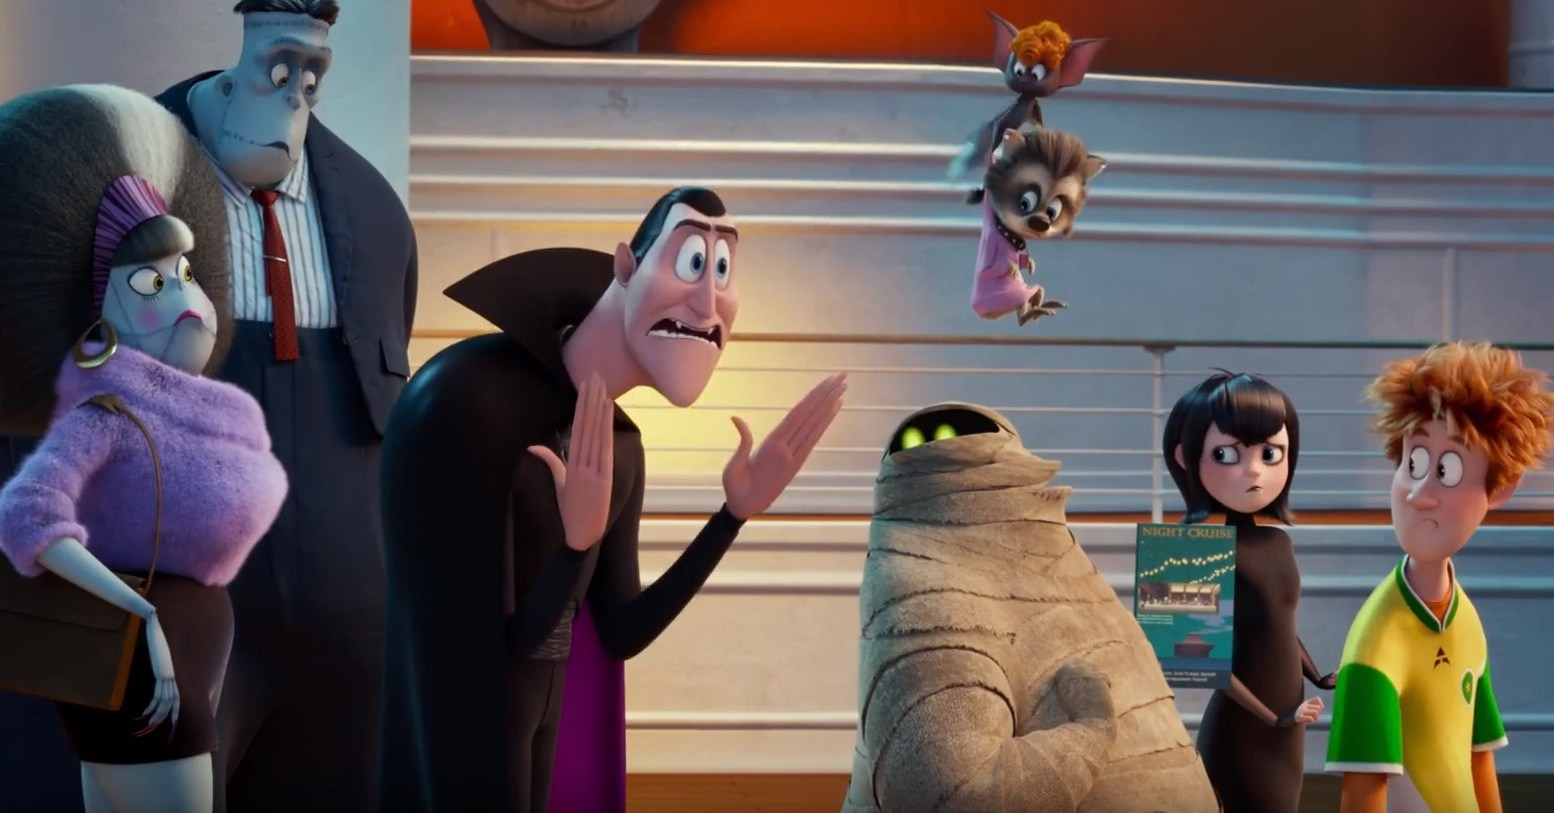 Nightmares Are Everywhere In New Hotel Transylvania 3 Trailer